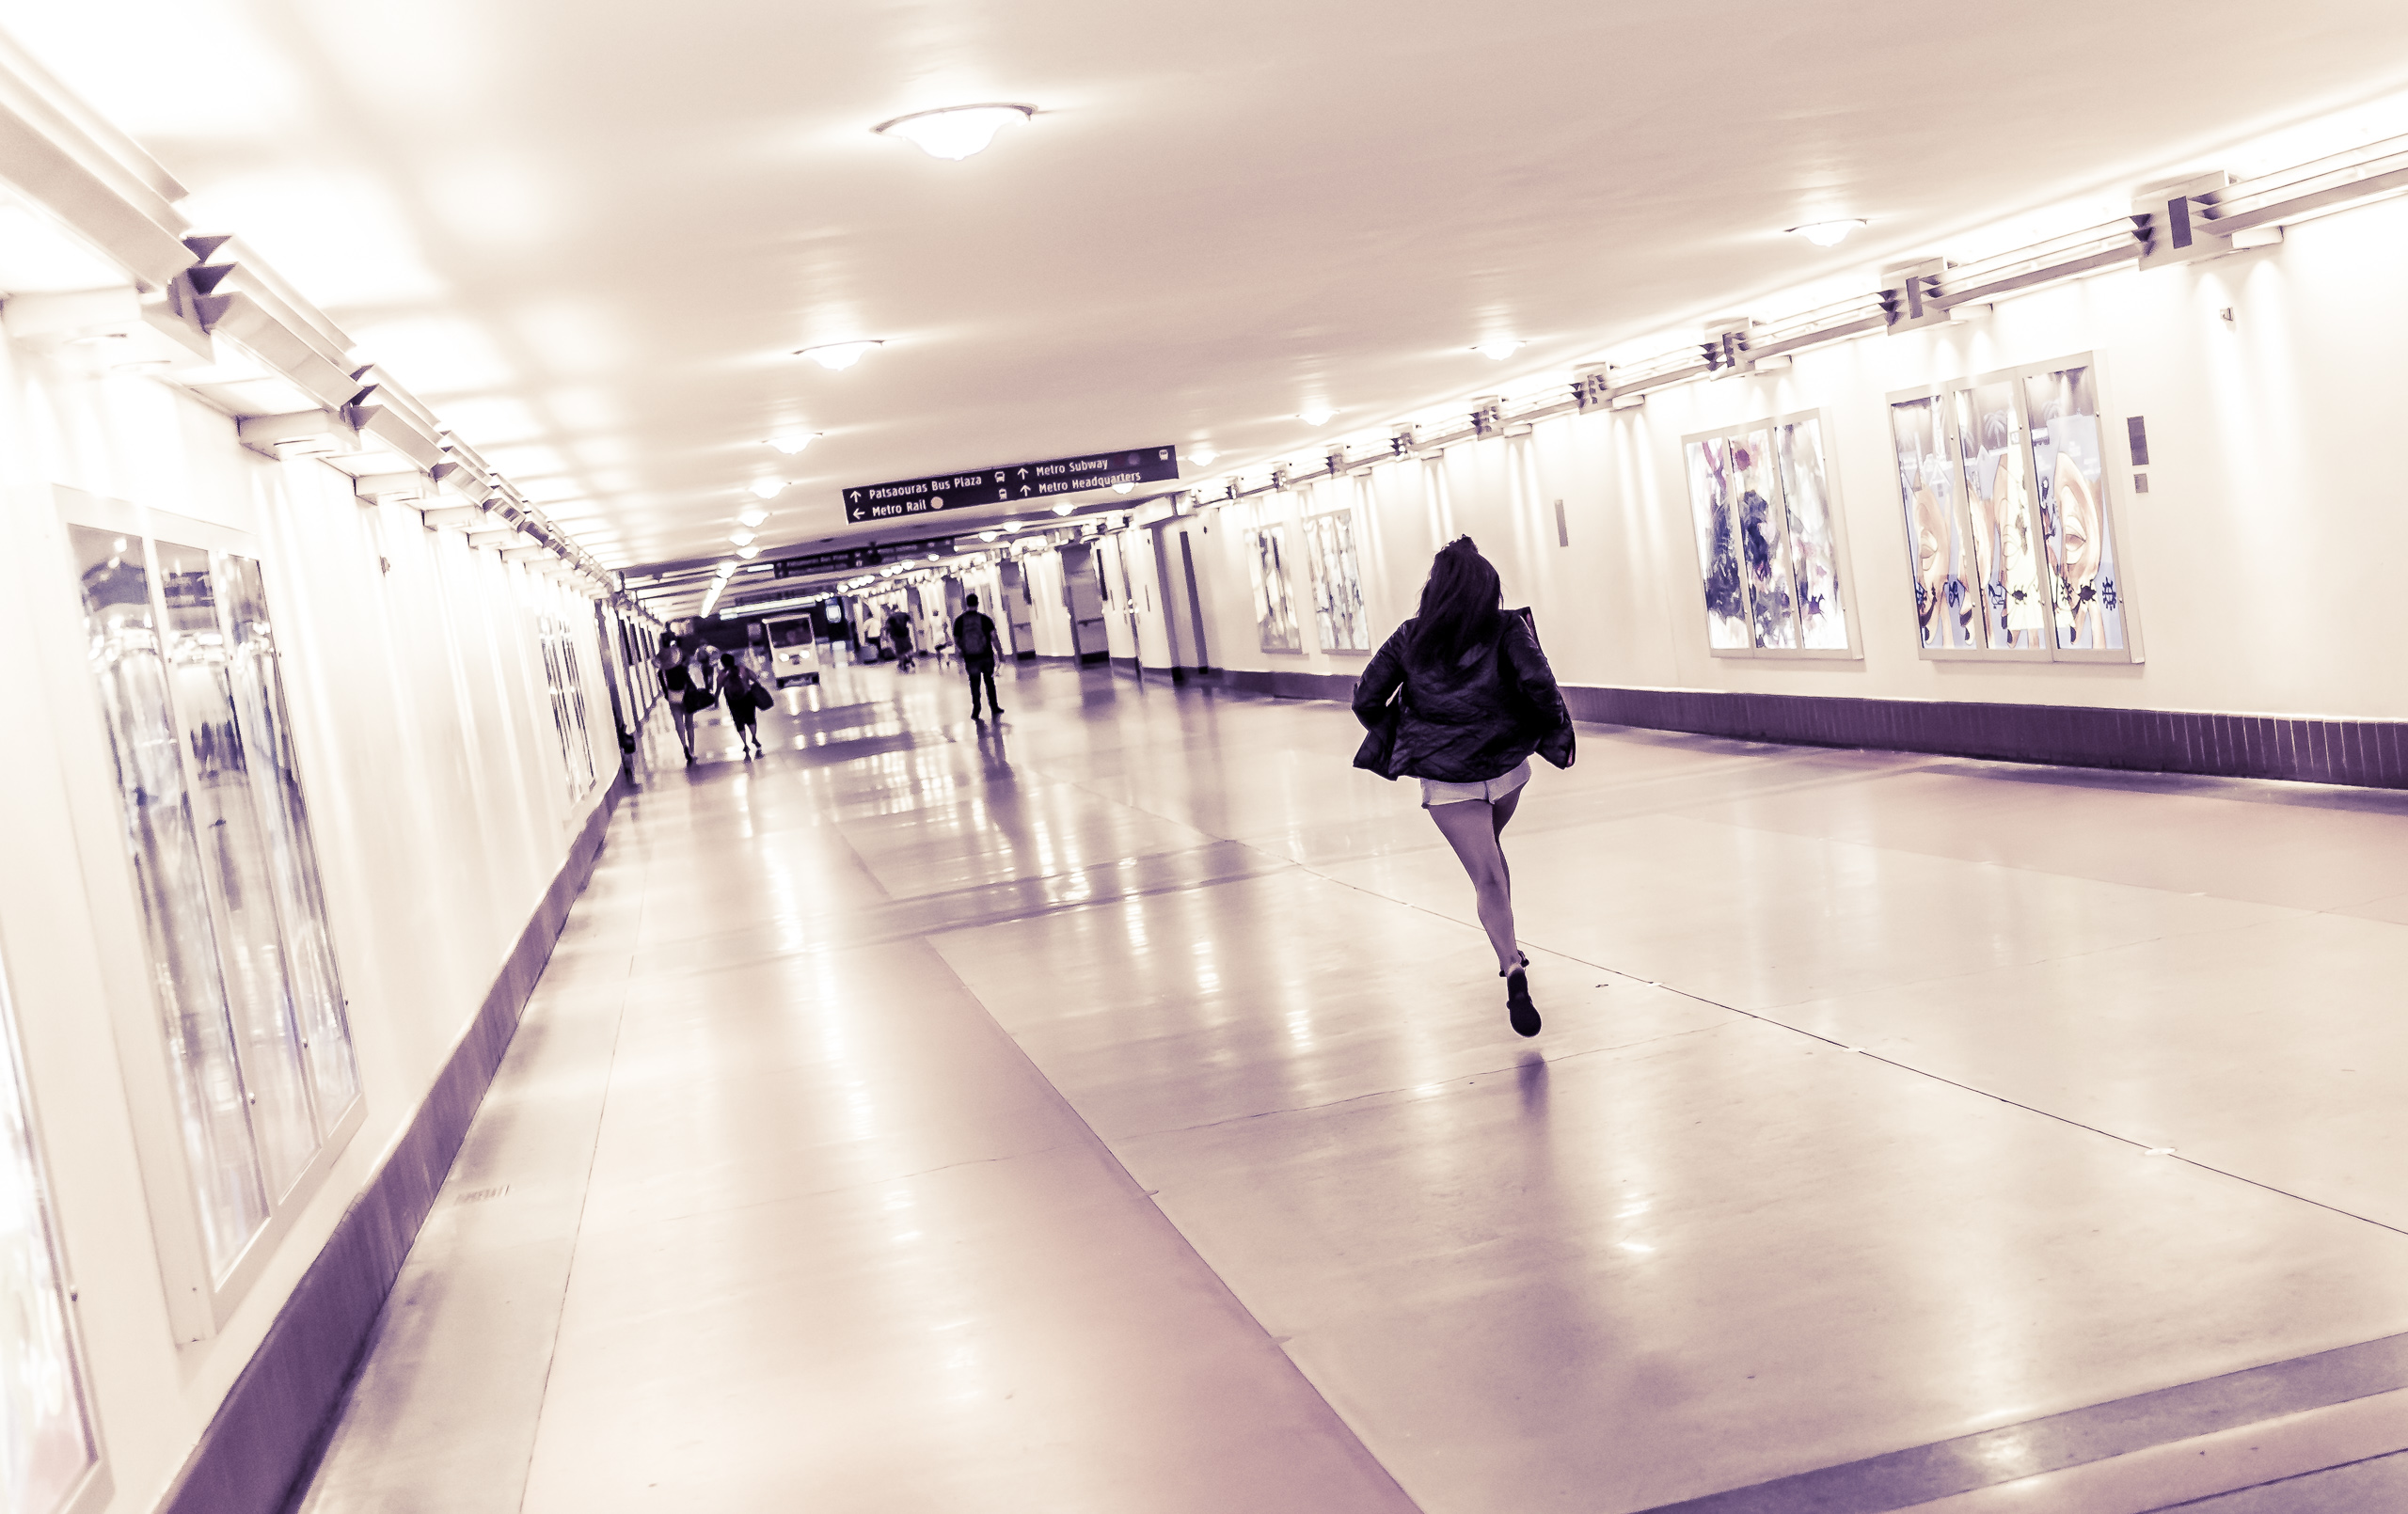 A person running down the length of an empty Union Station main corridor